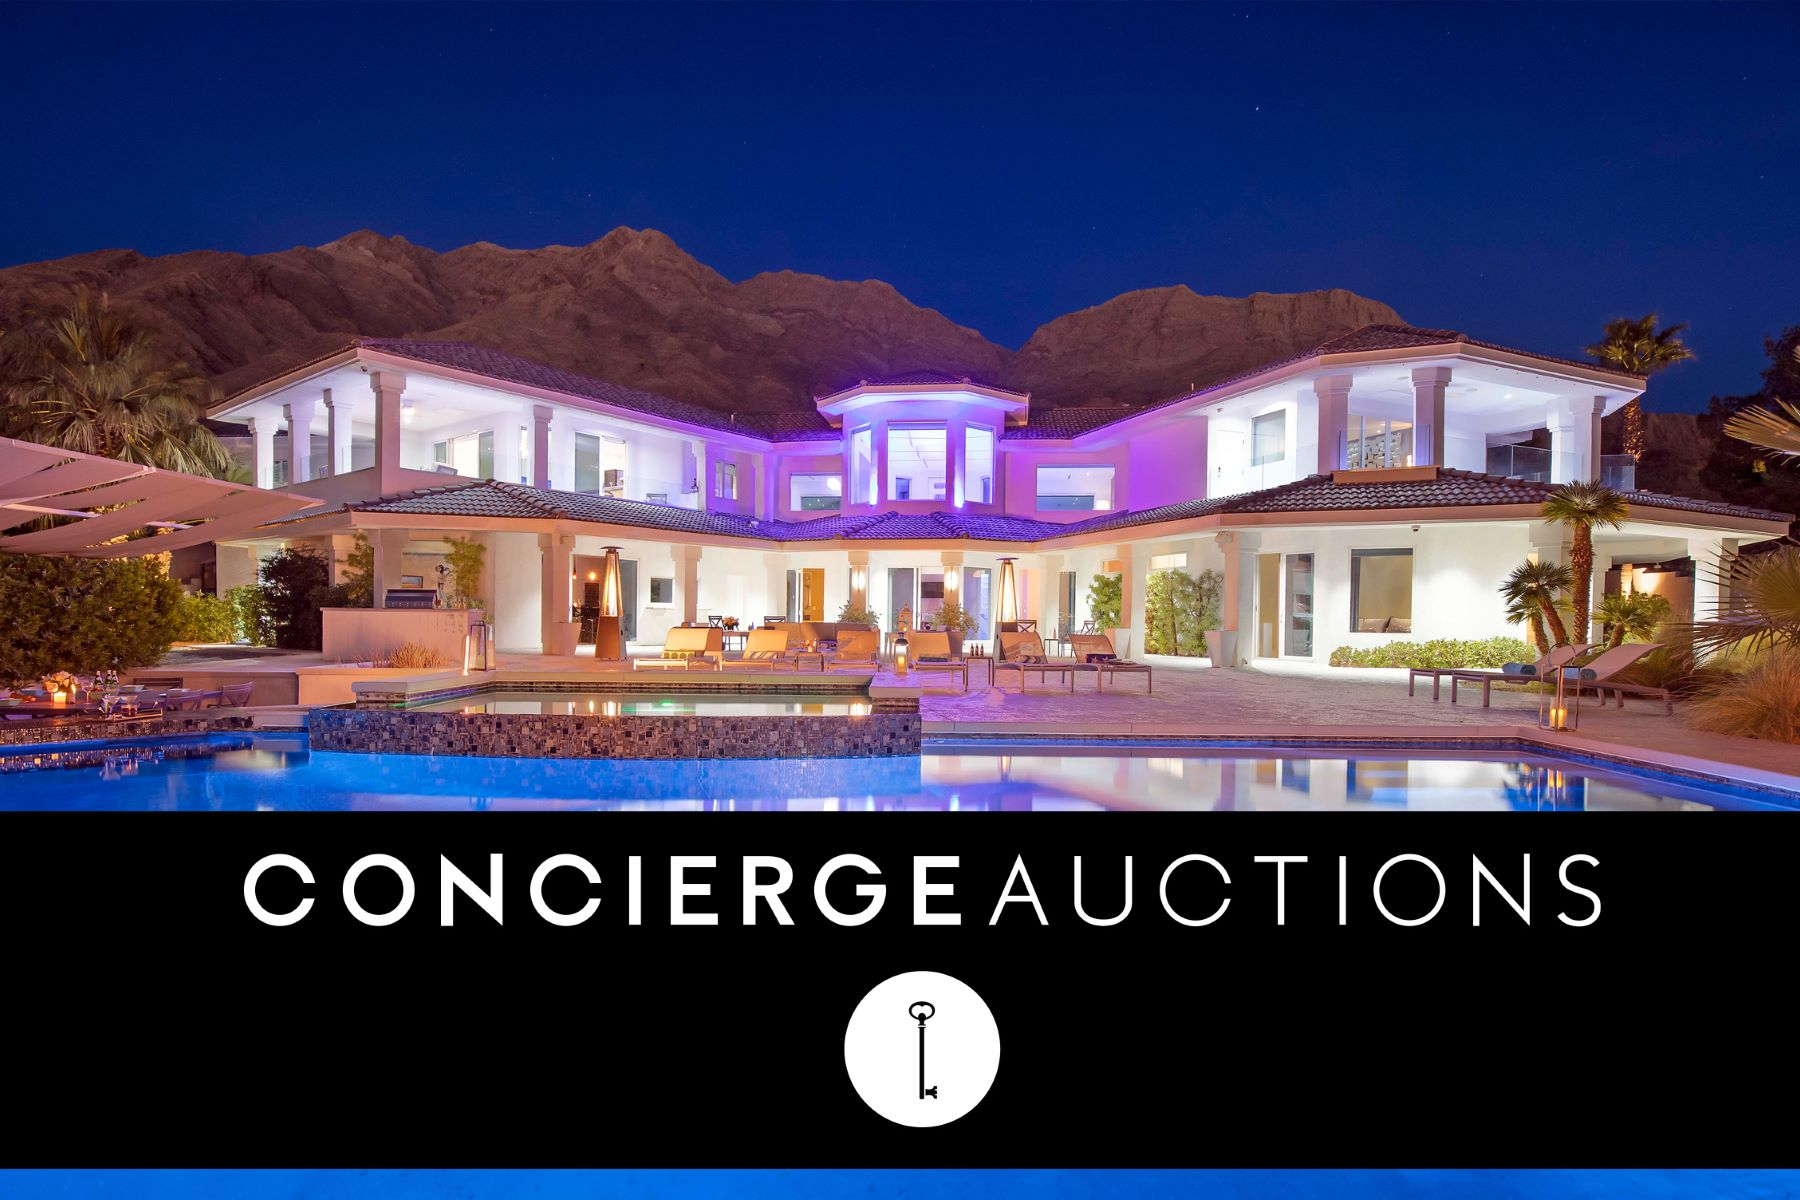 Single Family Homes for Active at LUXURY AUCTION Bid November 4–7, 2019, Previously $4.5M, Reserve $1.97M. 460 Probst Way Las Vegas, Nevada 89110 United States